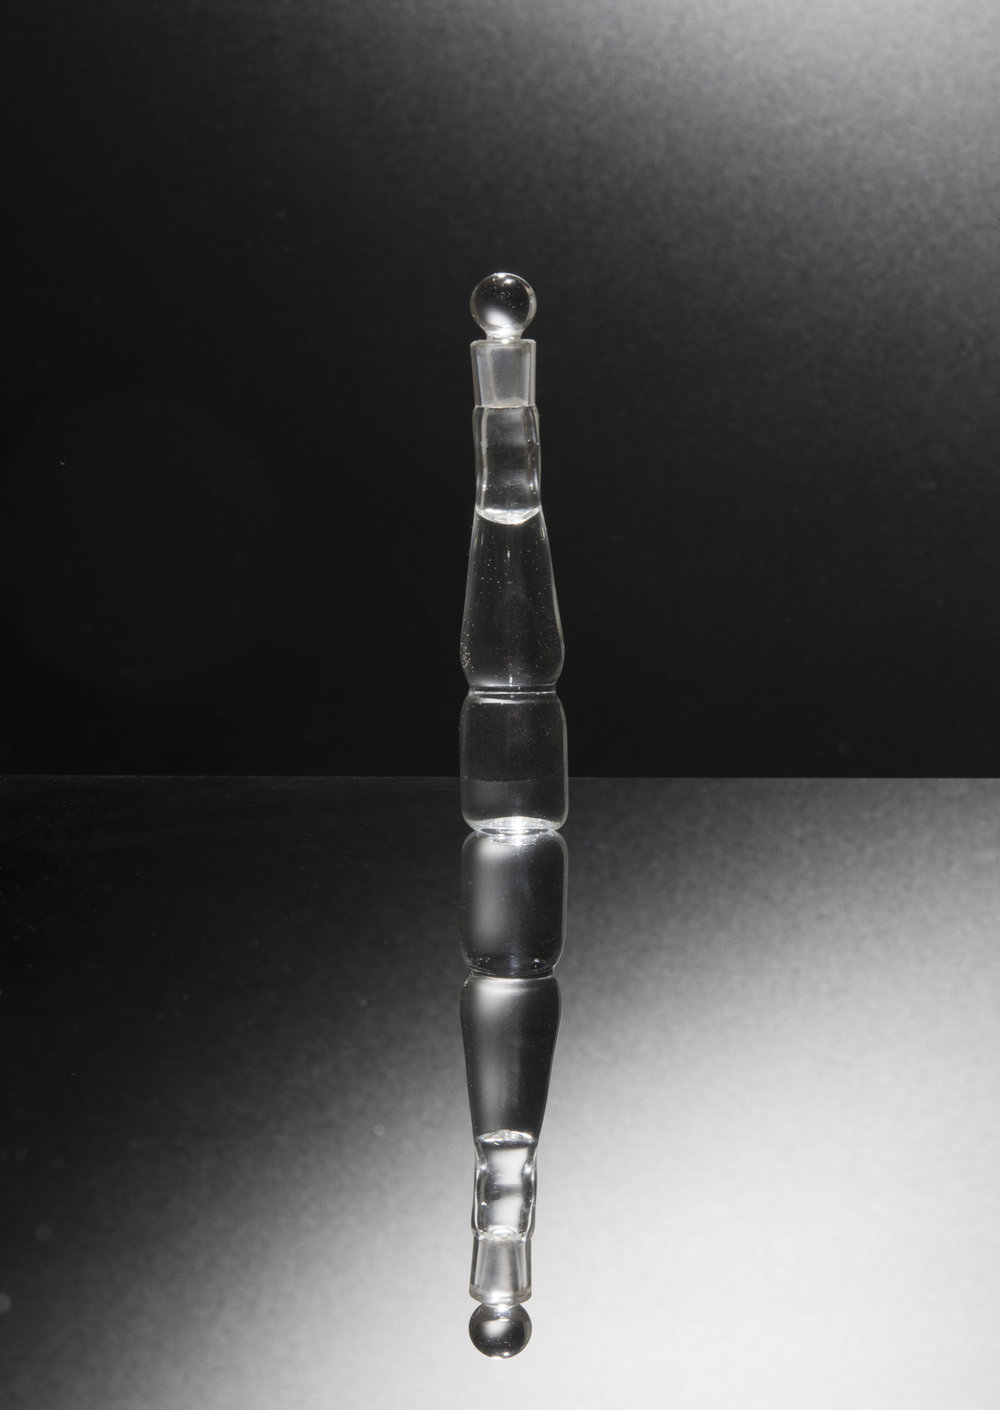 Carsten Höller   Phenylovethylamour  1993/2018 Edition 100 + 10 AP Glass vial, alpha-phenylethylamine 8 x 1 cm